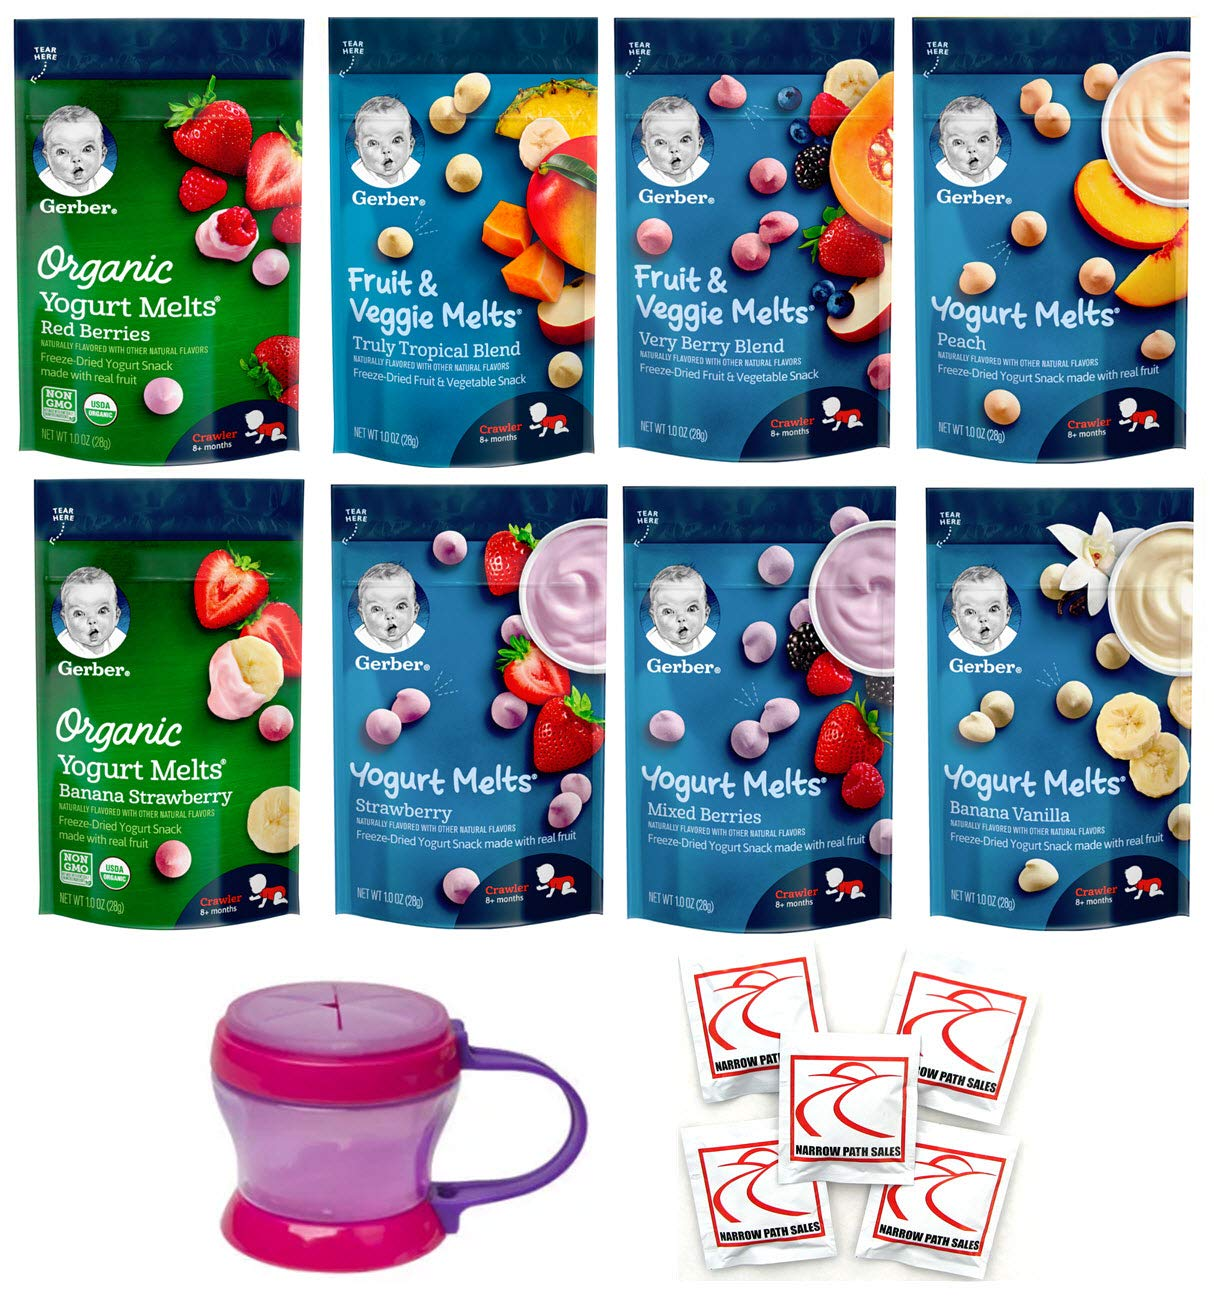 Yogurt Melts Gerber Graduates Ultimate - Bundle of 8 Yogurt Melts and 1 Snack Catcher Cup - Includes Every Melt Flavor Available